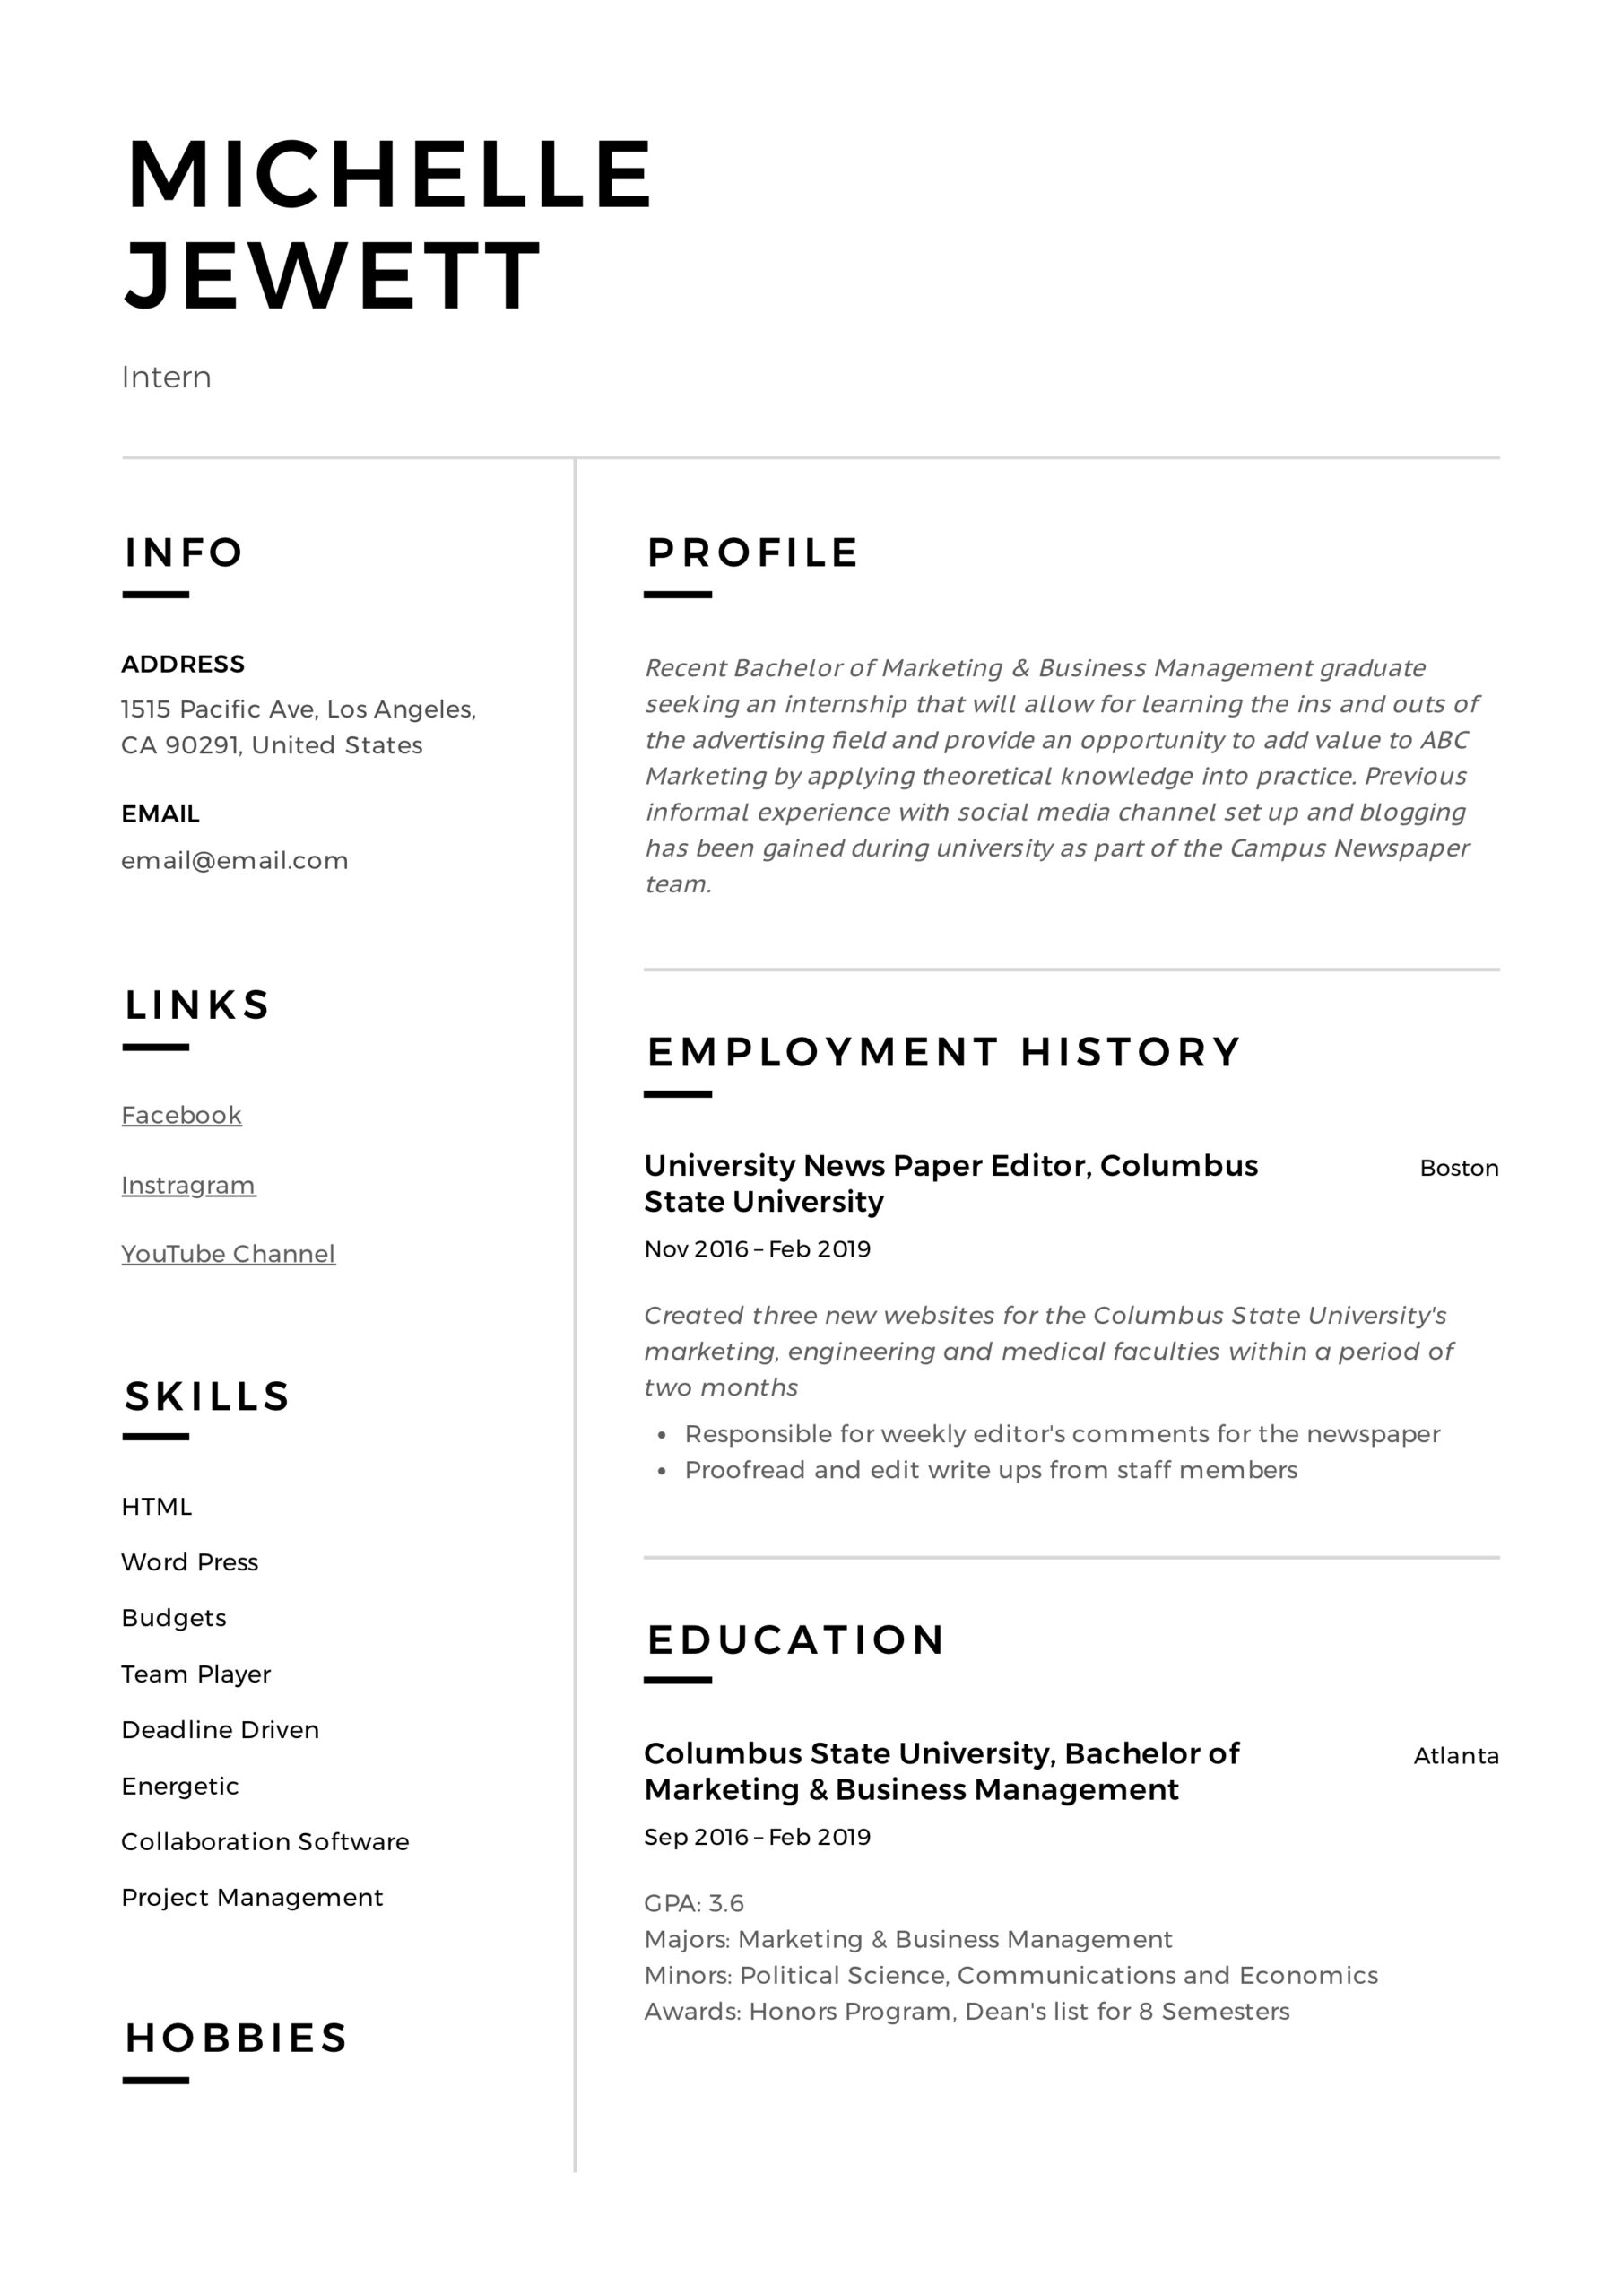 intern resume writing guide samples pdf college student summer internship example army Resume College Student Summer Internship Resume